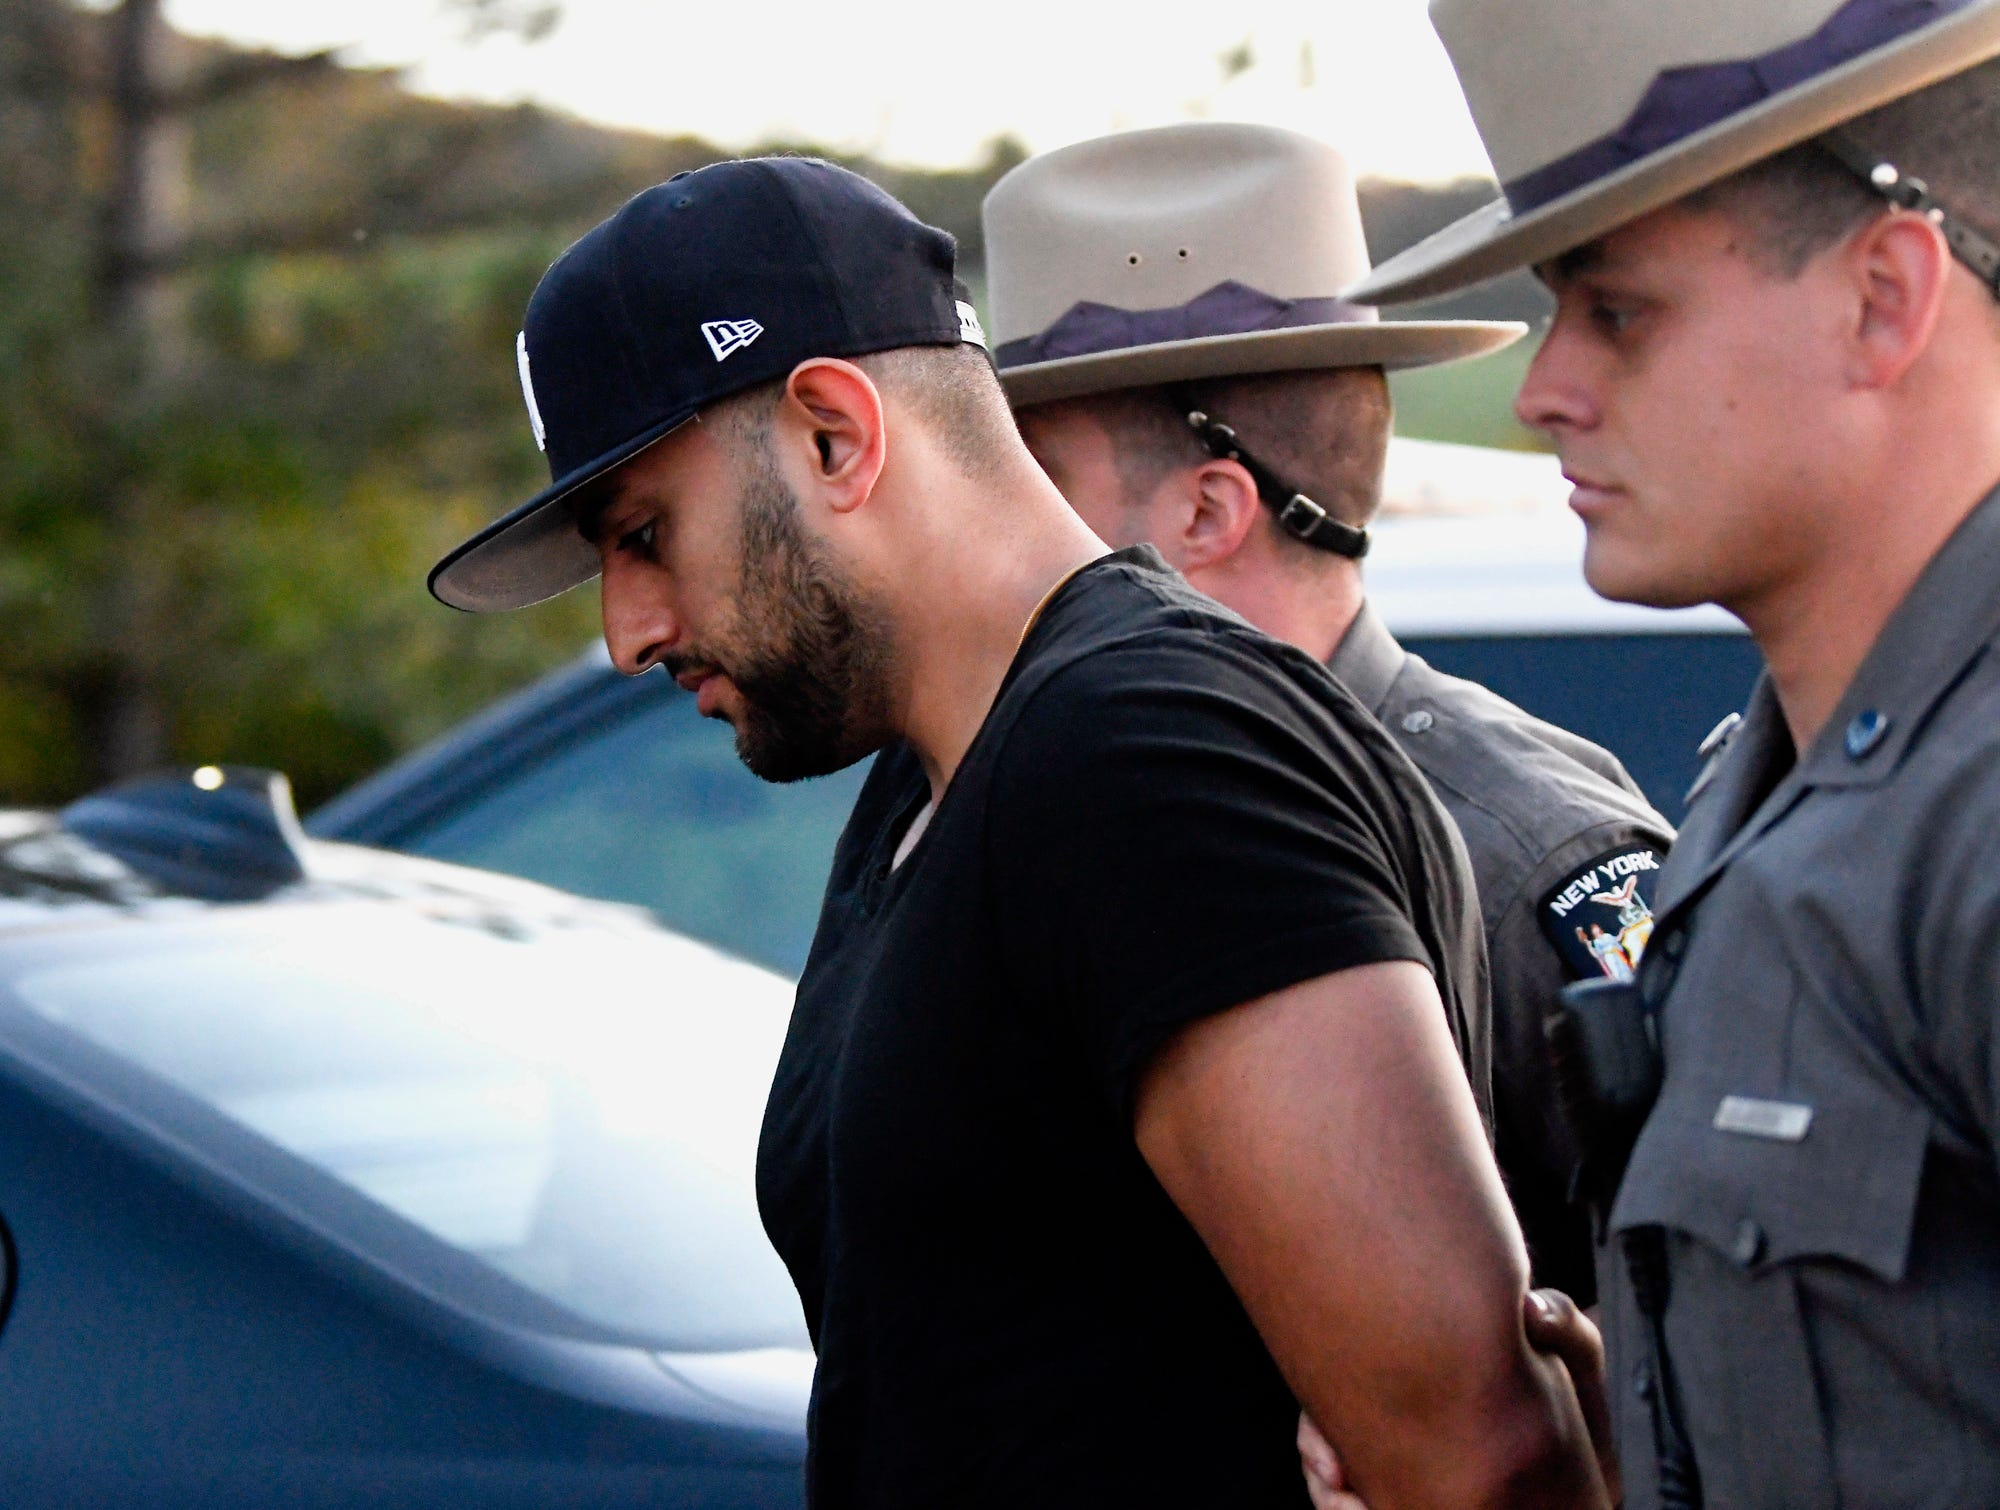 Nauman Hussain is brought into Cobleskill Town, N.Y., court for arraignment Wednesday, Oct. 10, 2018. Limousine service operator, Hussain, was charged Wednesday with criminally negligent homicide in a crash that killed 20 people, while police continued investigating what caused the wreck and whether anyone else will face charges. (AP Photo/Hans Pennink)